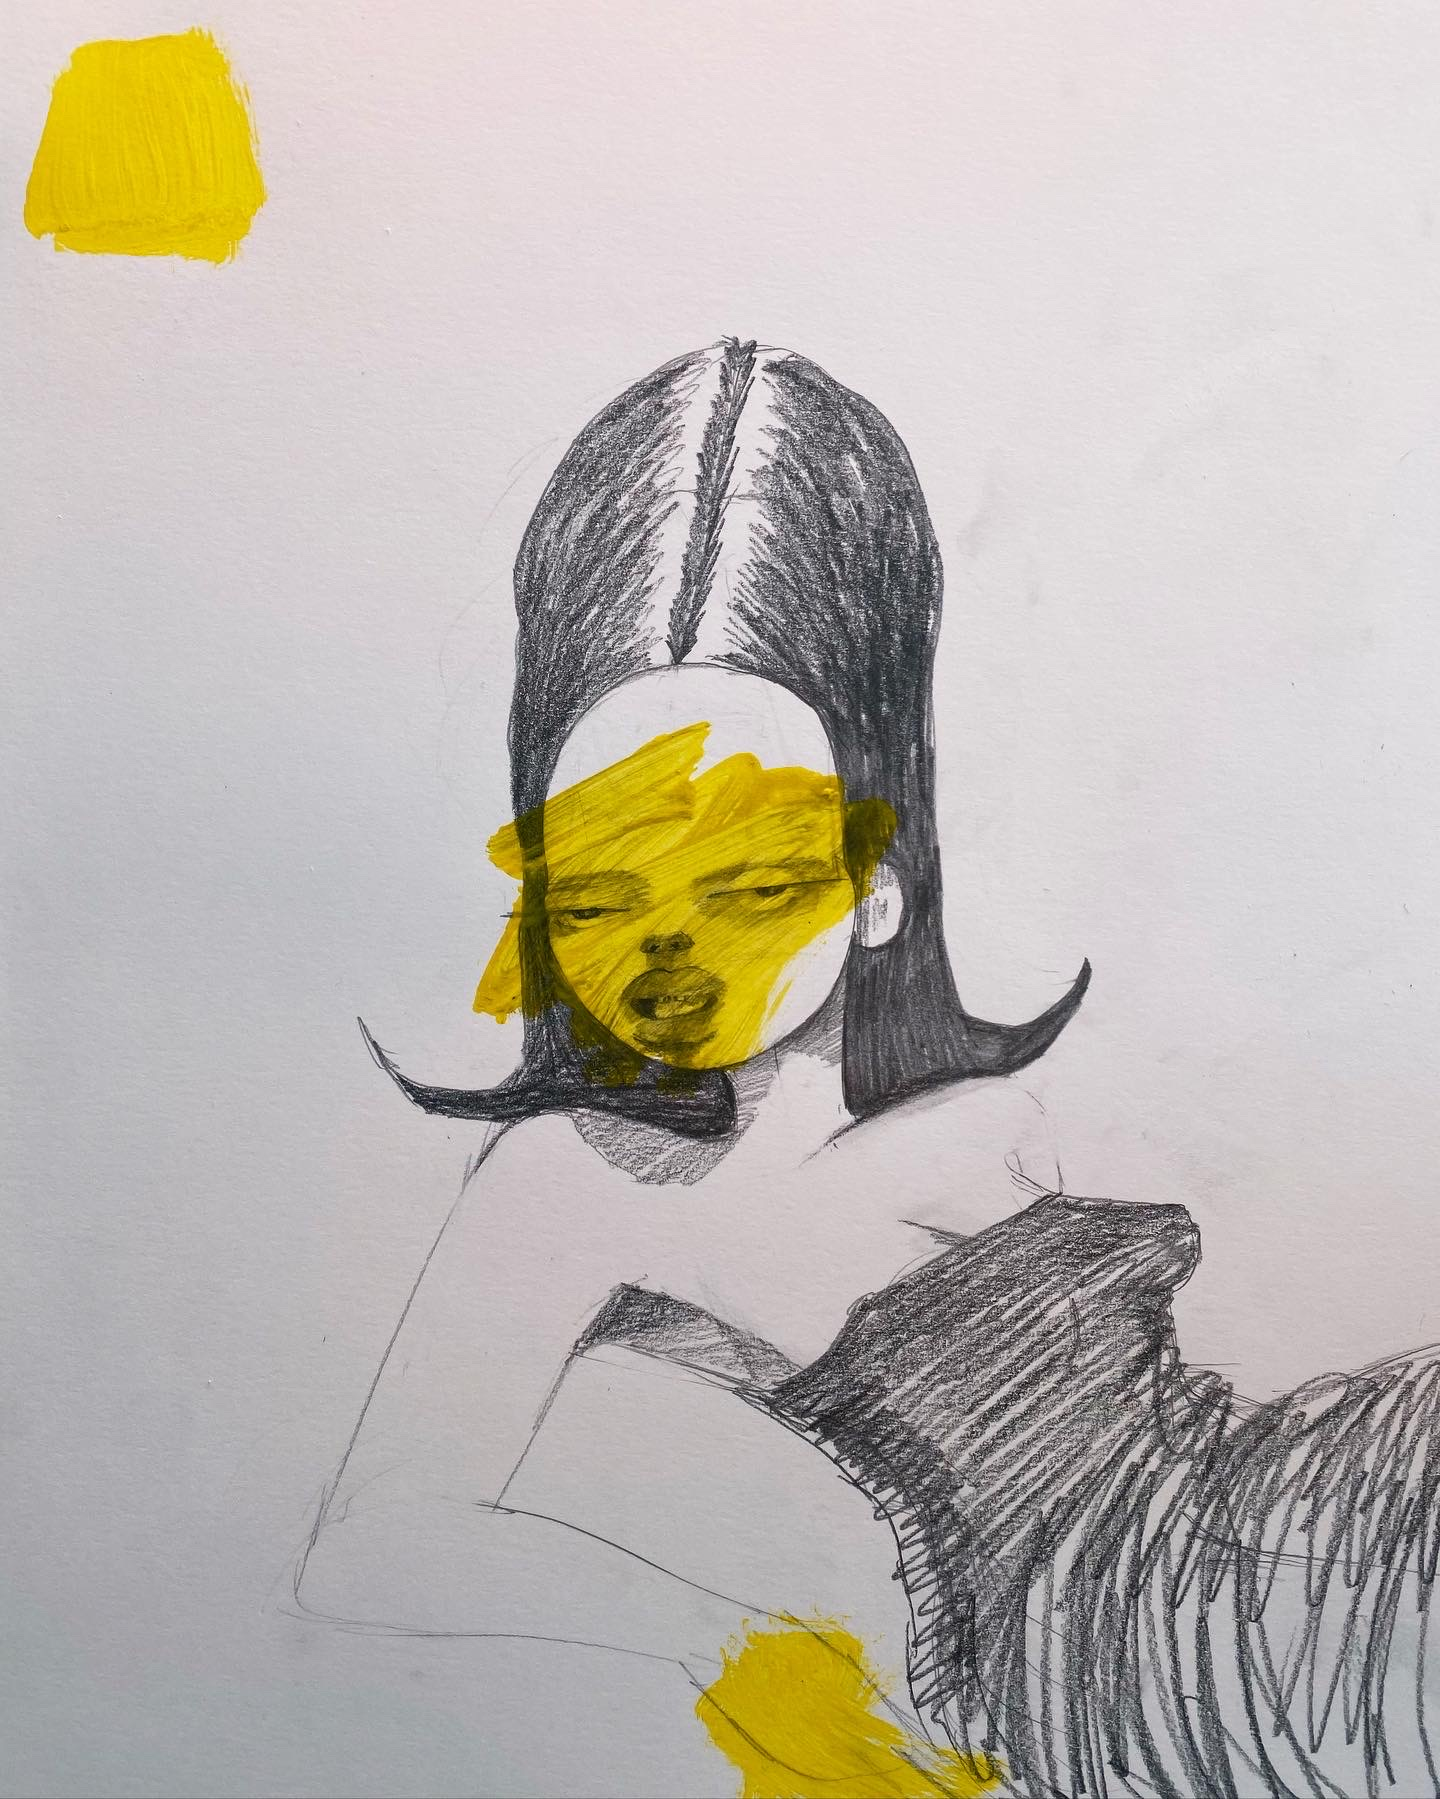 Drawing 3 by Ben Evans